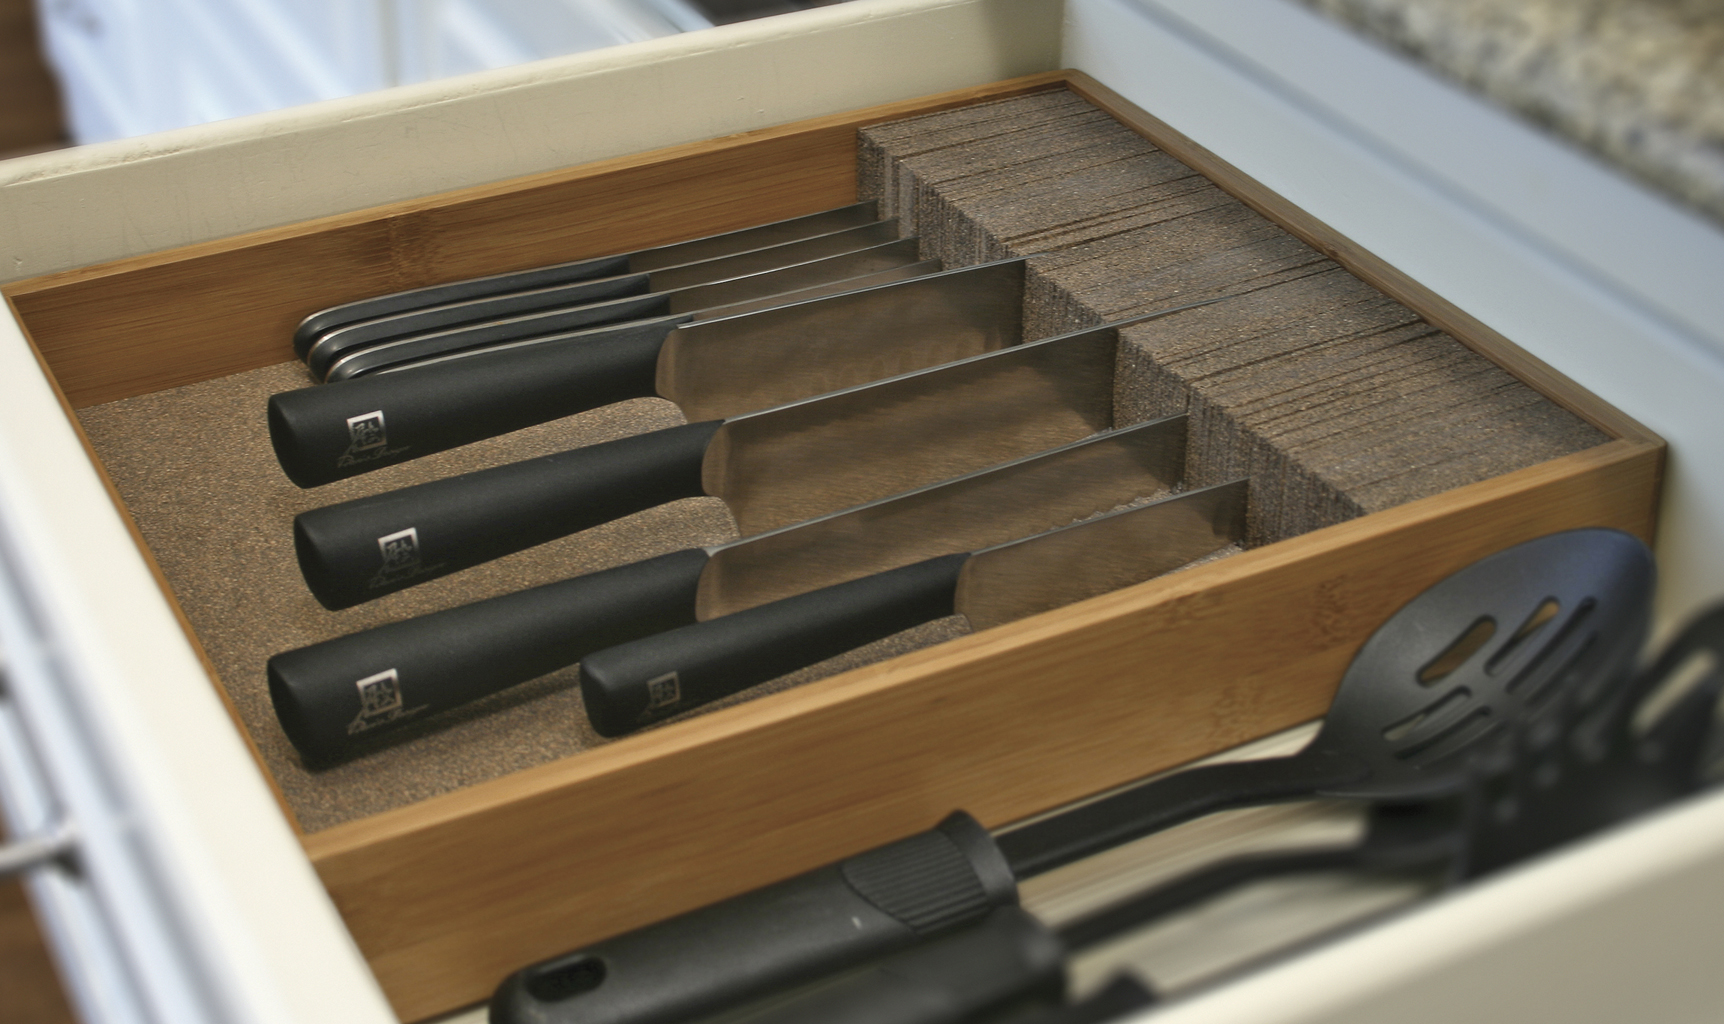 Deluxe Knife Dock